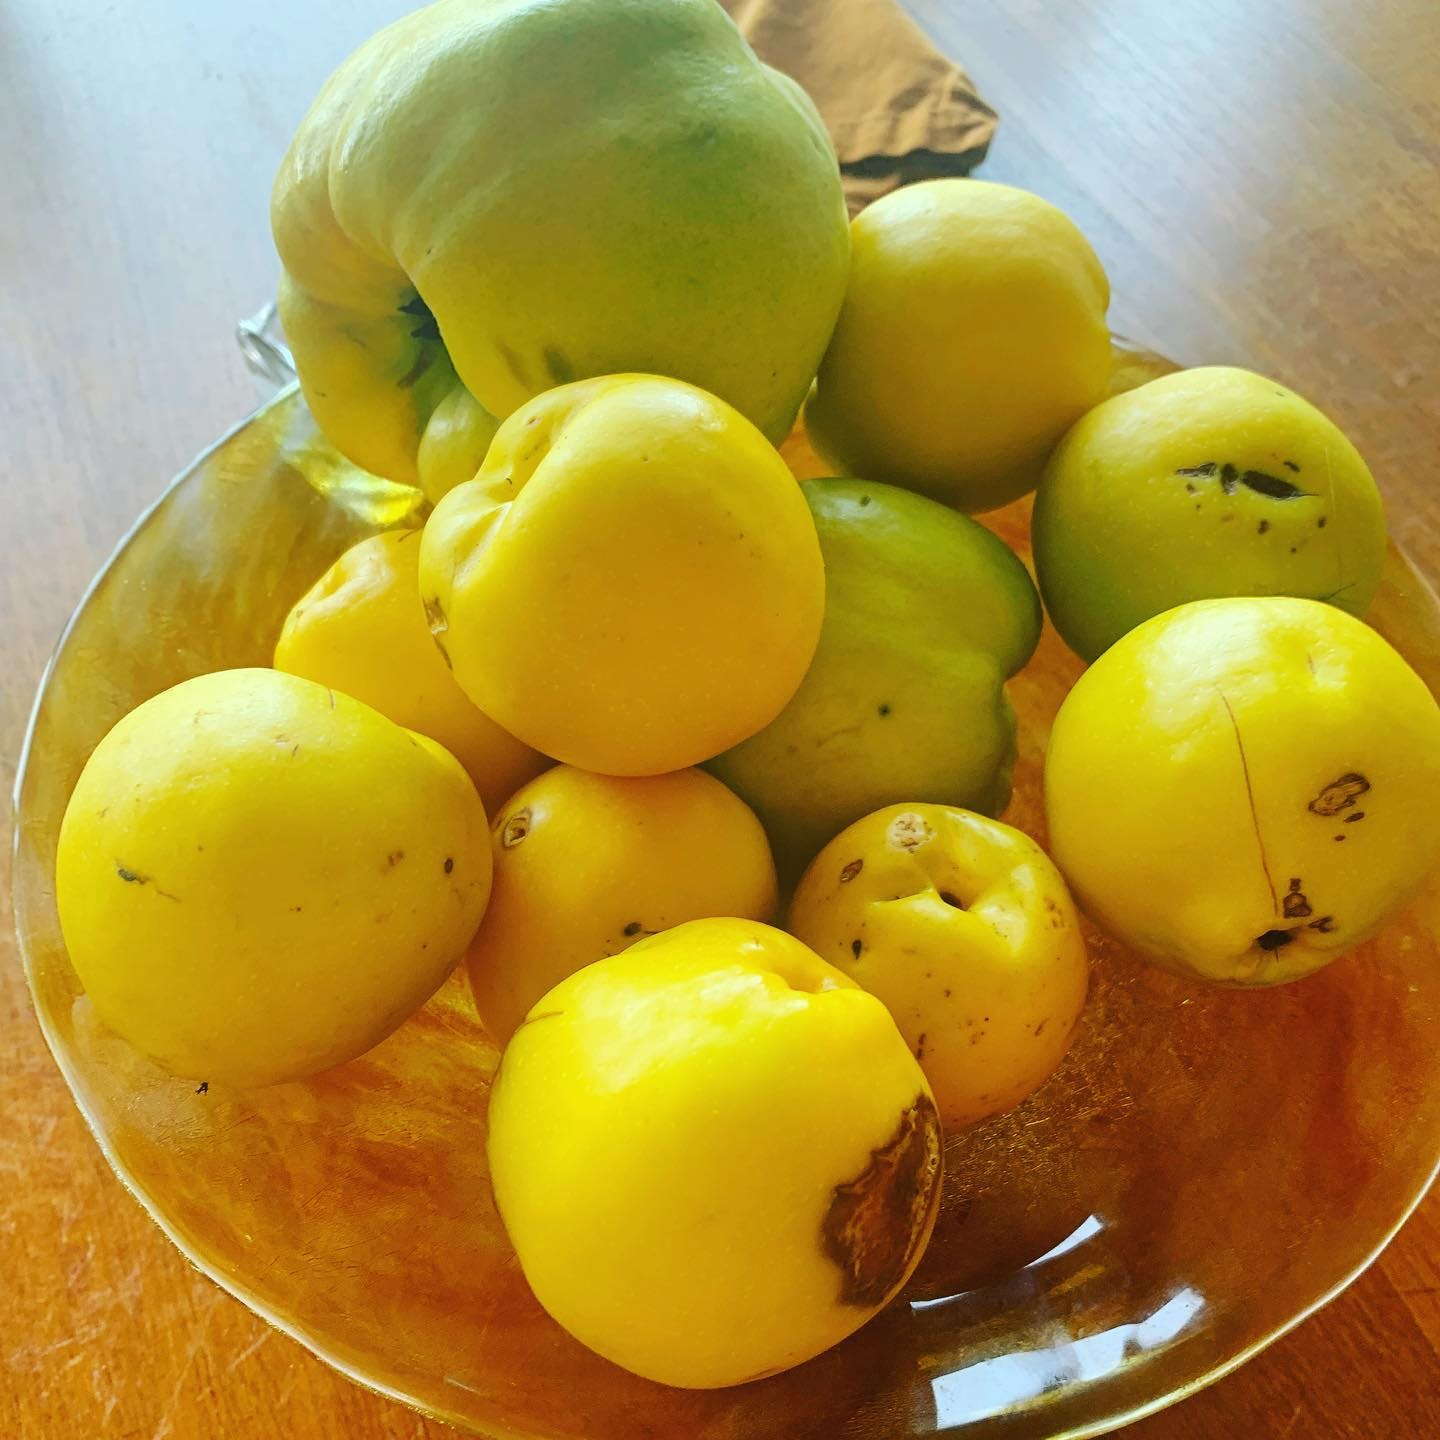 """It is QUINCE Season, friends (rich in #feedyourgutbrain pectin ❤️). Pictured here, some are free, courtesy of neighbors. Some are paid for @portlandfarmers market. All are perfect 😍. You don't have to """"get fancy"""" with quince. If you never used it before, just throw it in with the apples when making apple sauce❤️. When made with quince, it will go further to #feedyourgutbrain❤️. Because #shortchainfattyacids 😍."""